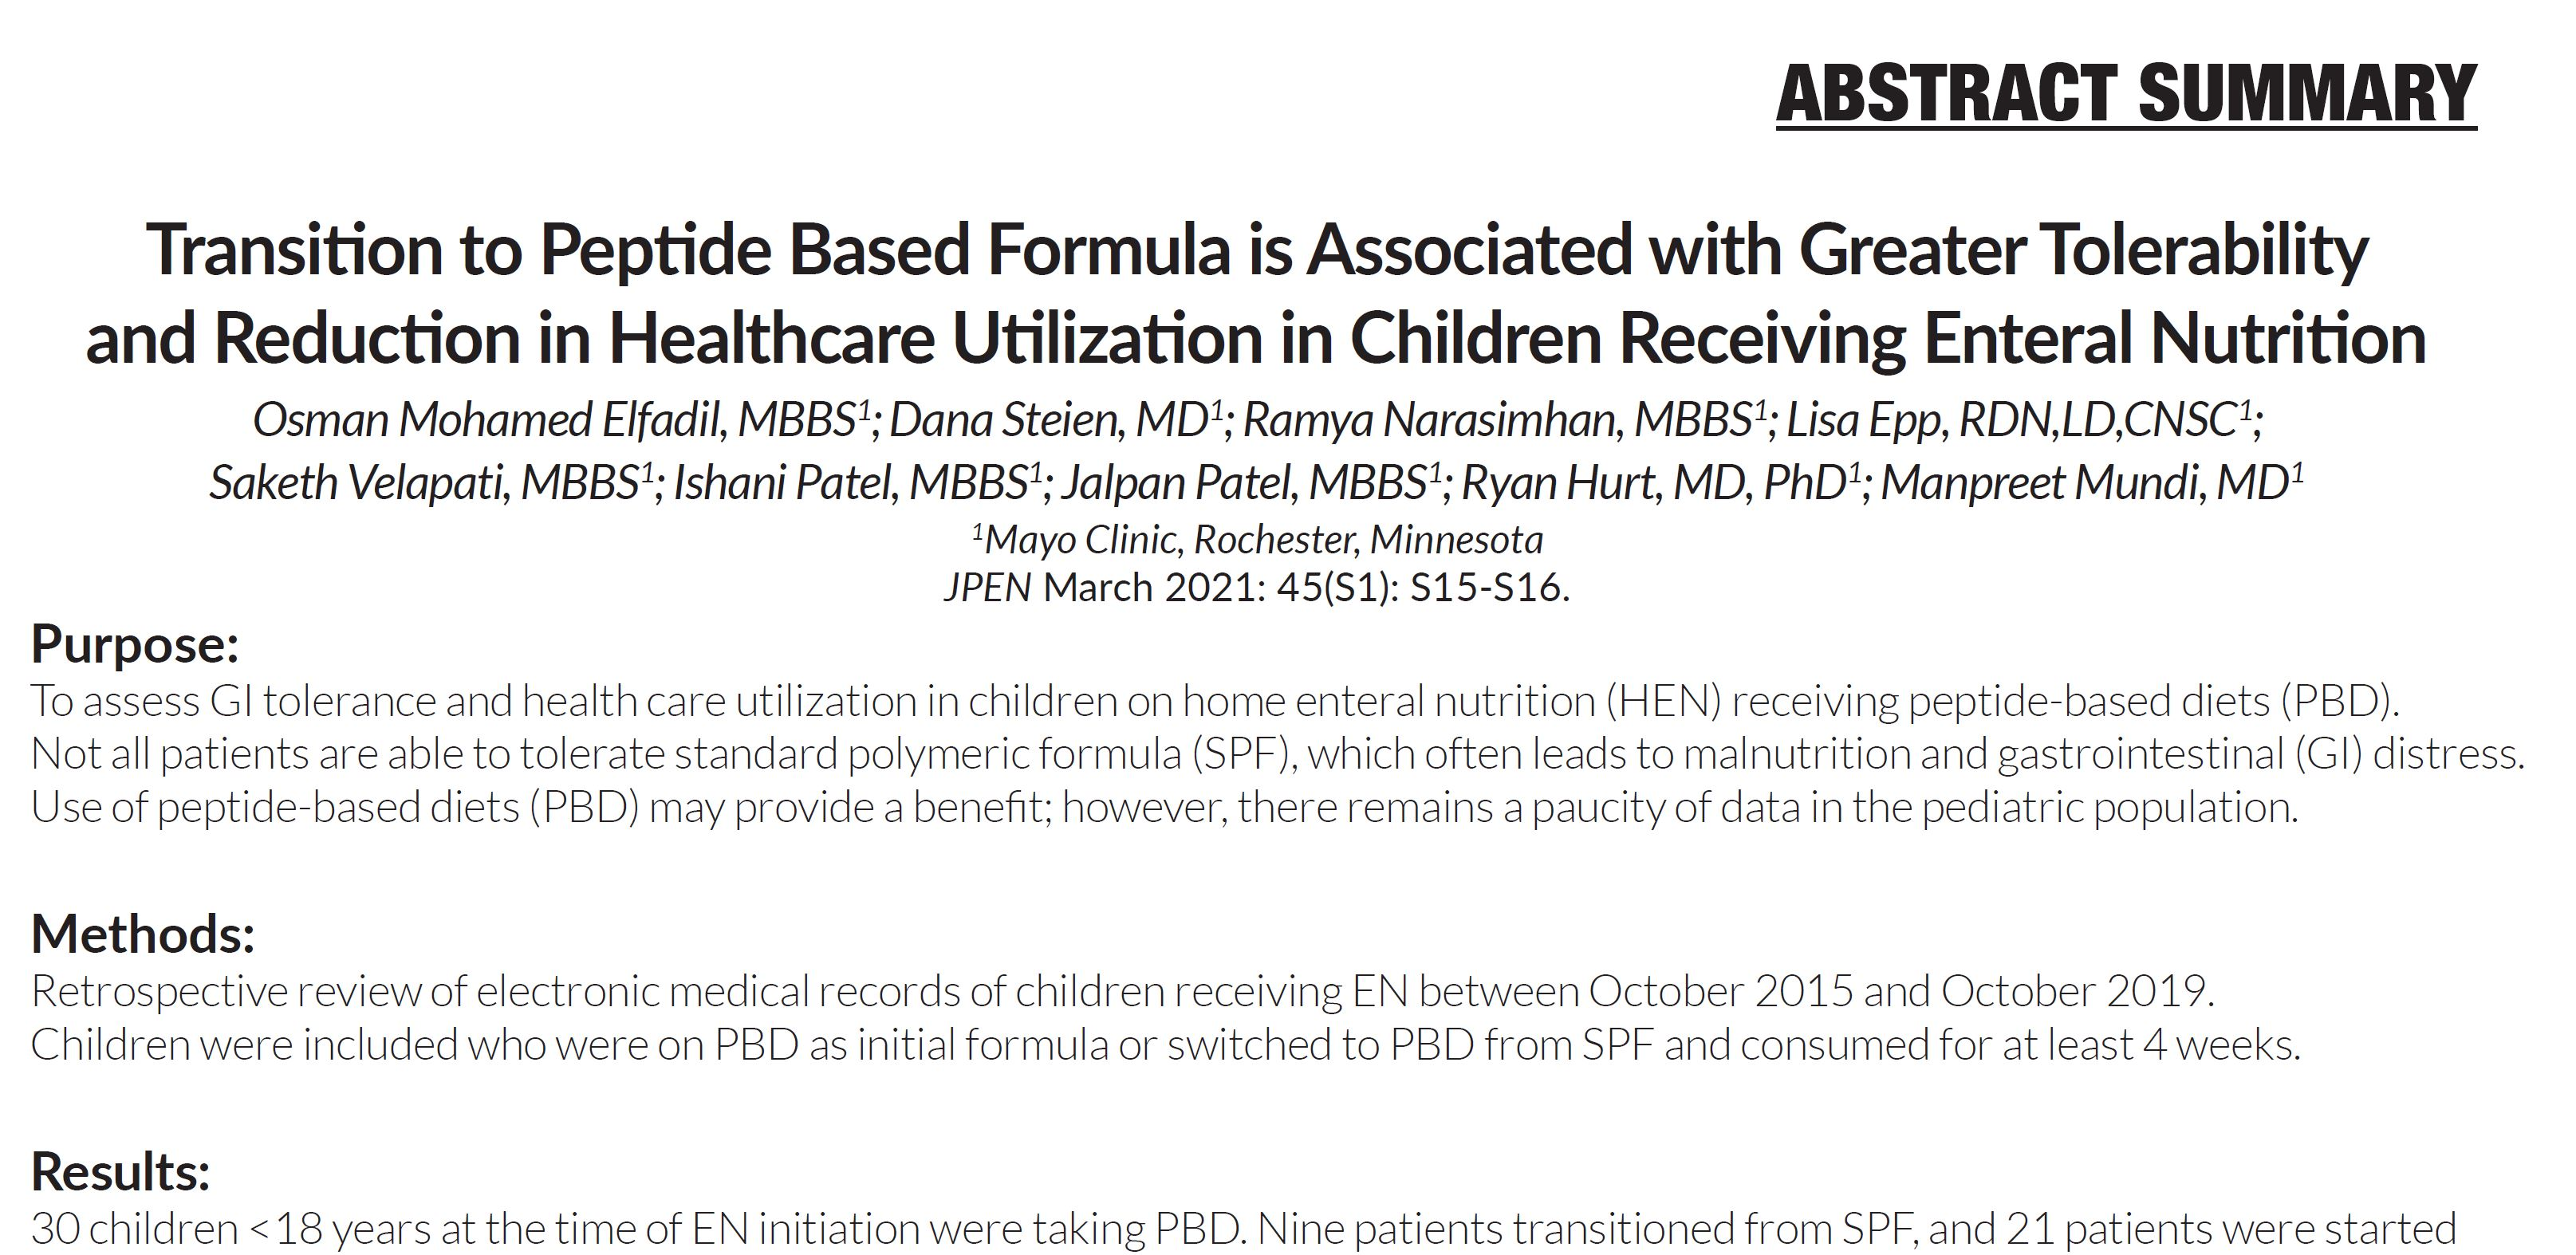 Transition to Peptide Based Formula Associated with Greater Tolerability and Reduction in Healthcare Utilization in Children Receiving Enteral Nutrition